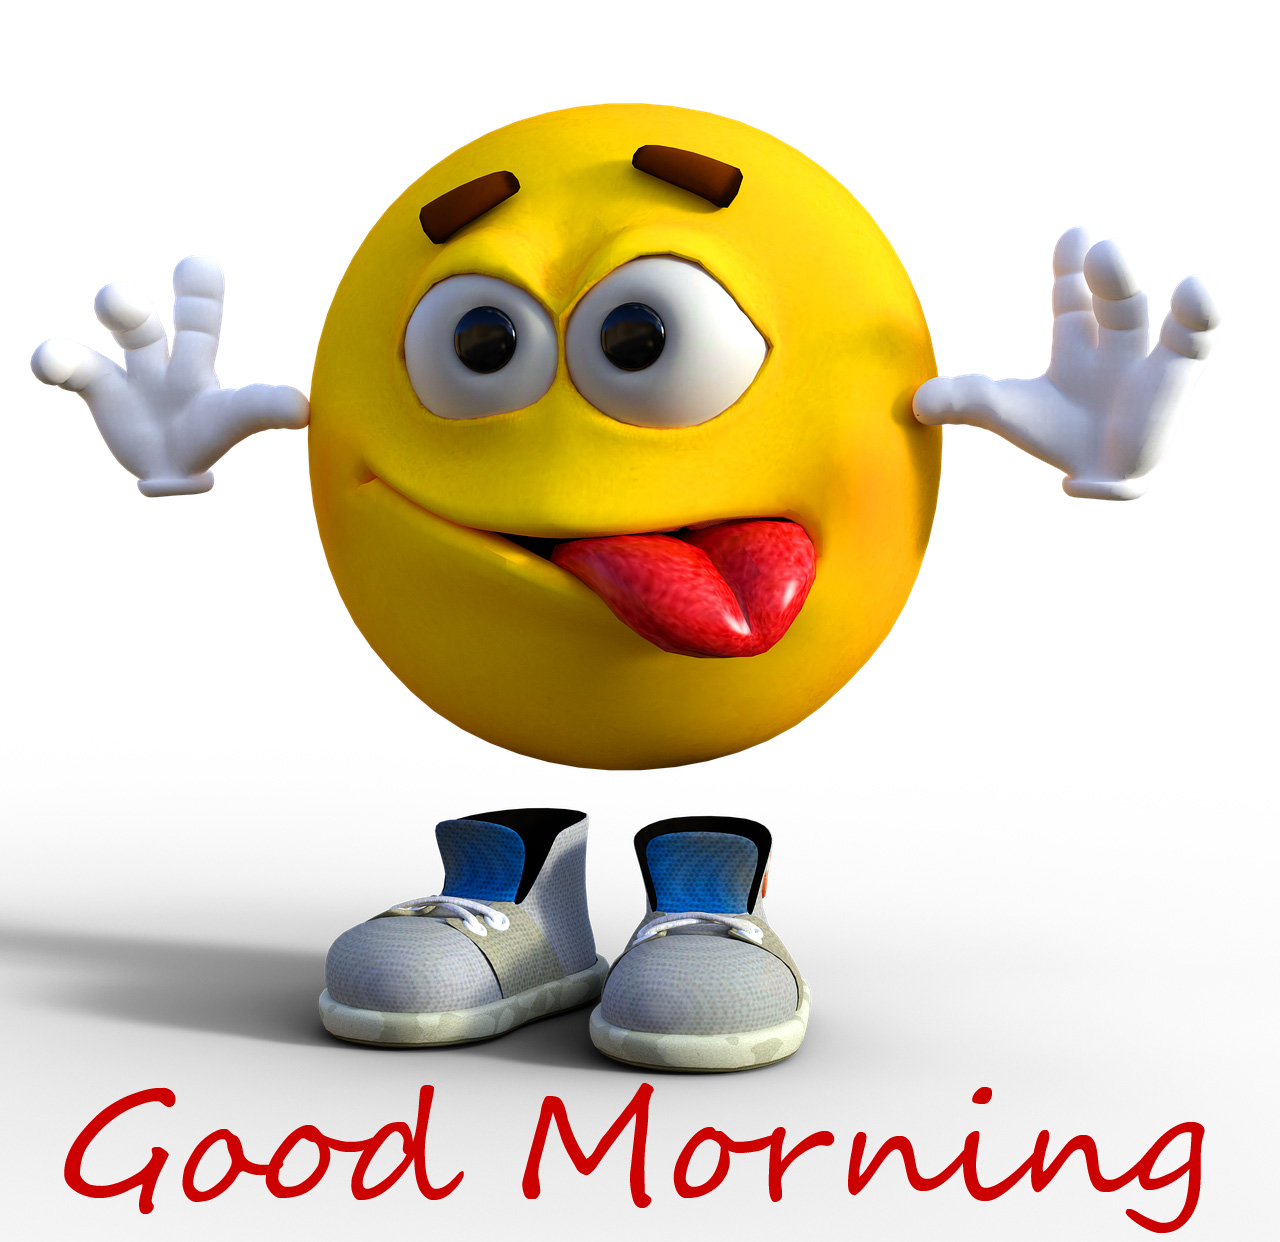 Smiley Cute Cartoon Good Morning Picture